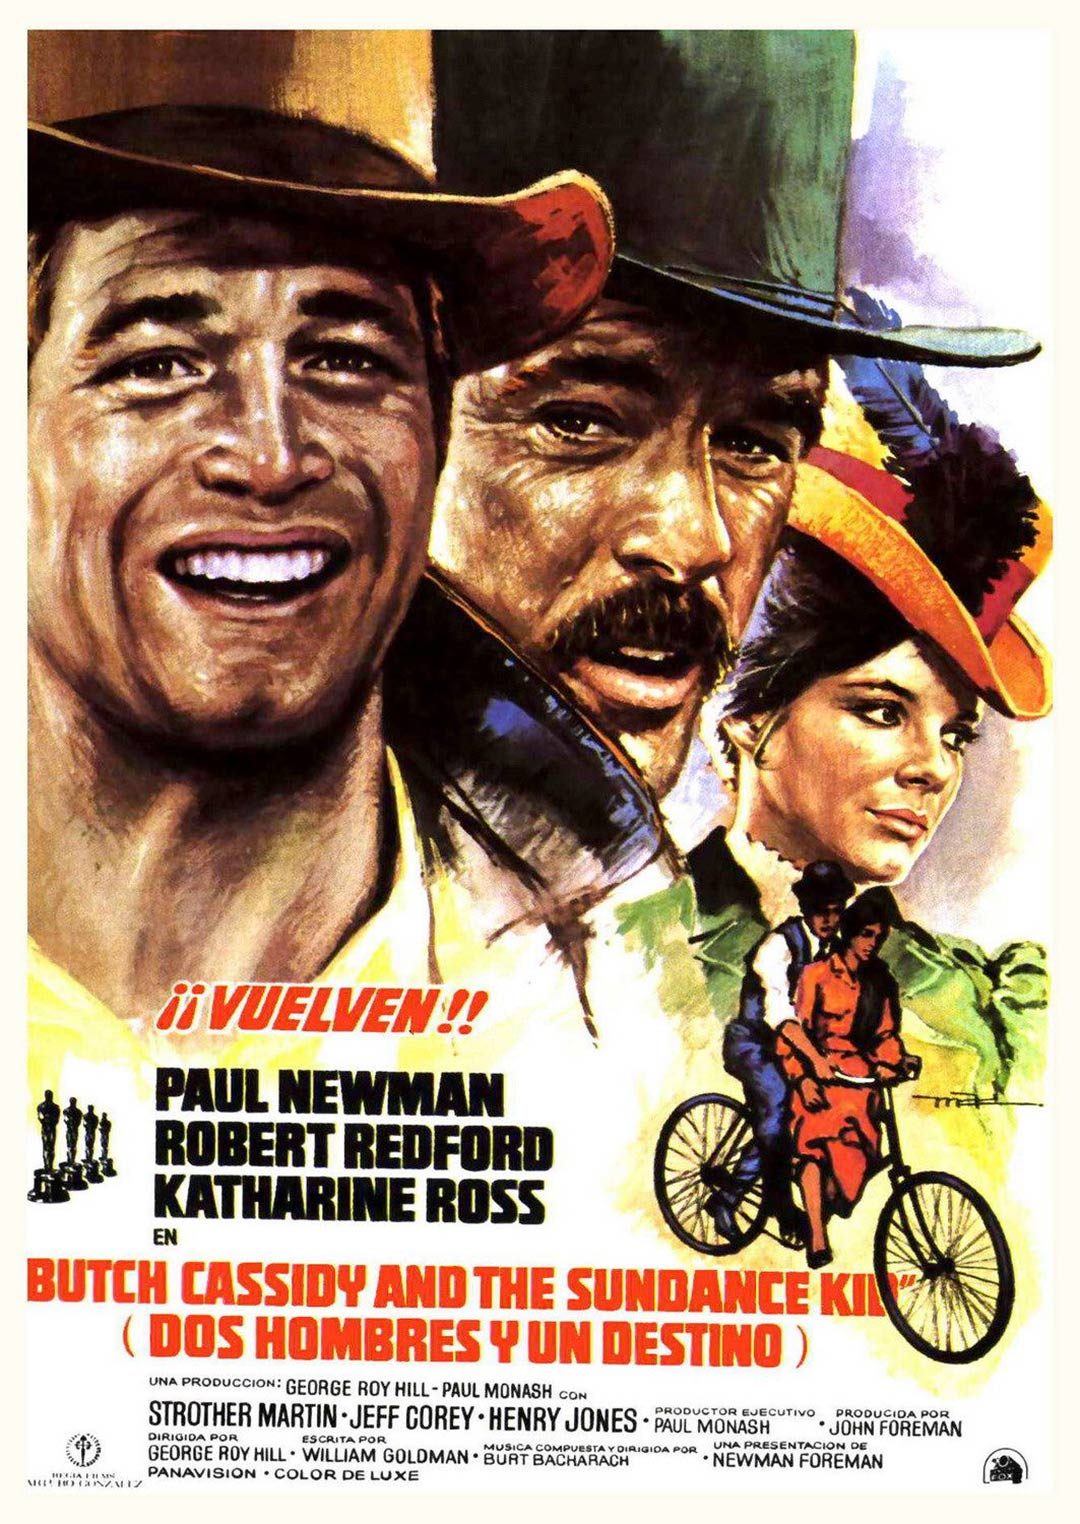 butch cassidy and the sundance kid essay The biggest take-away from the modest american experience film butch cassidy & the sundance kid is the theme.